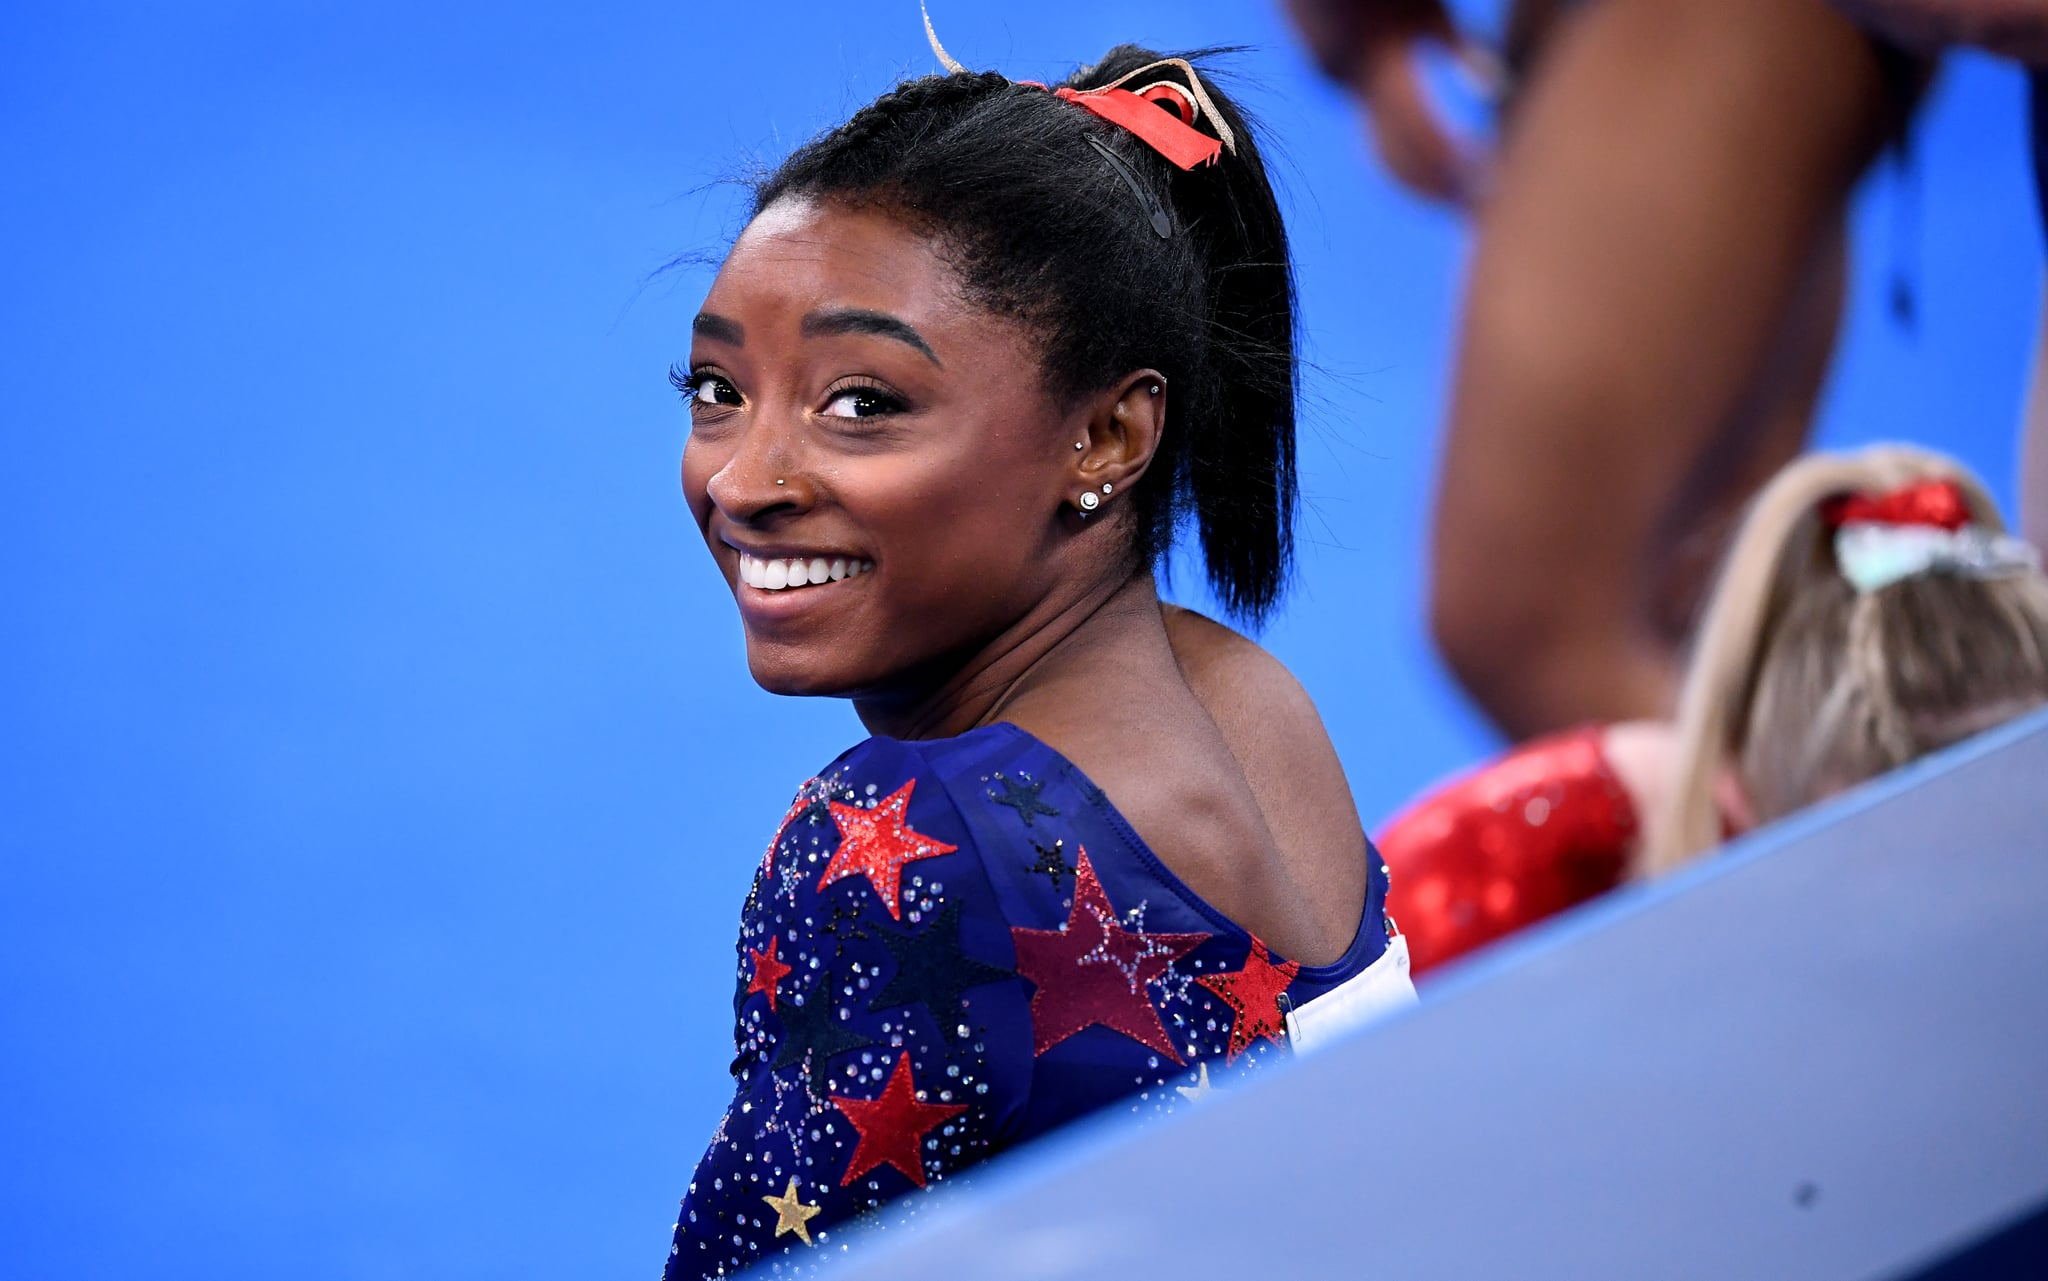 -TOKYO,JAPAN July 24, 2021: USAs Simone Biles smiles in between sessions in the womens team qualifying at the 2020 Tokyo Olympics.  (Wally Skalij /Los Angeles Times via Getty Images)